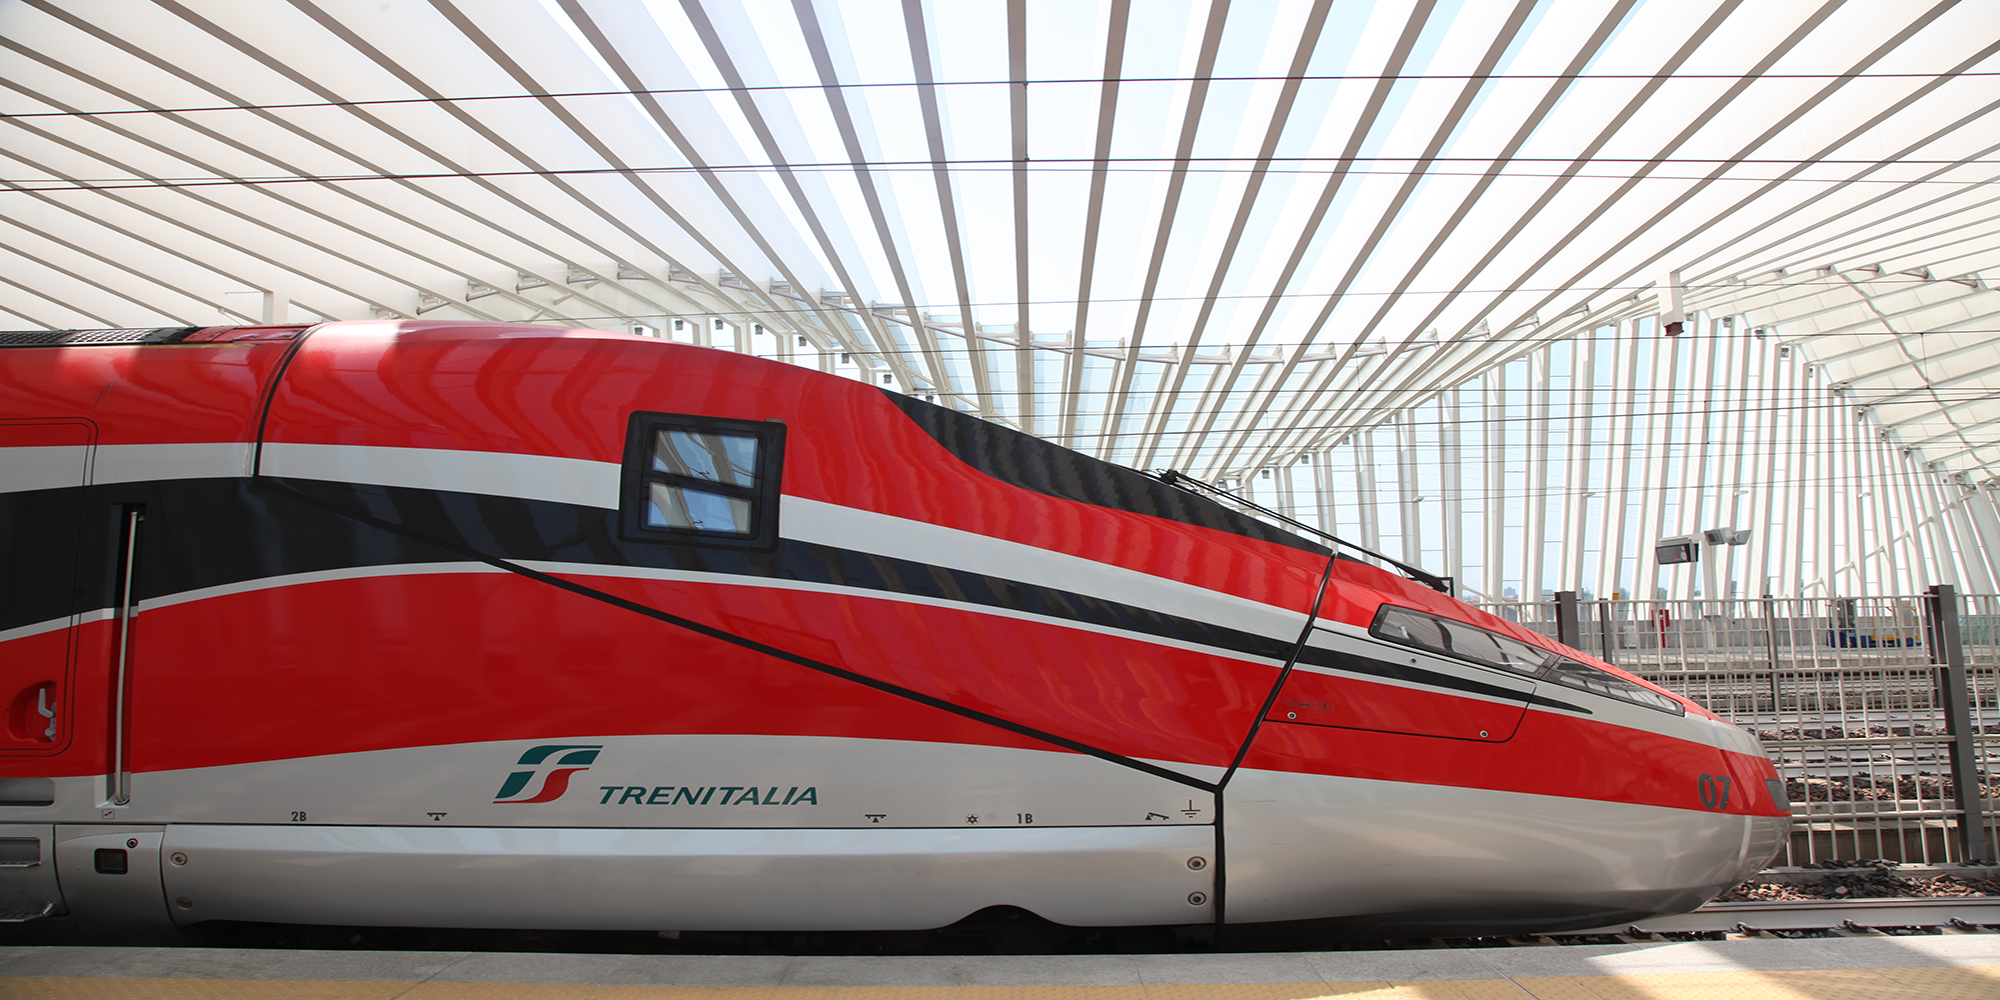 ParkCloud agrees renewal contract with Trenitalia